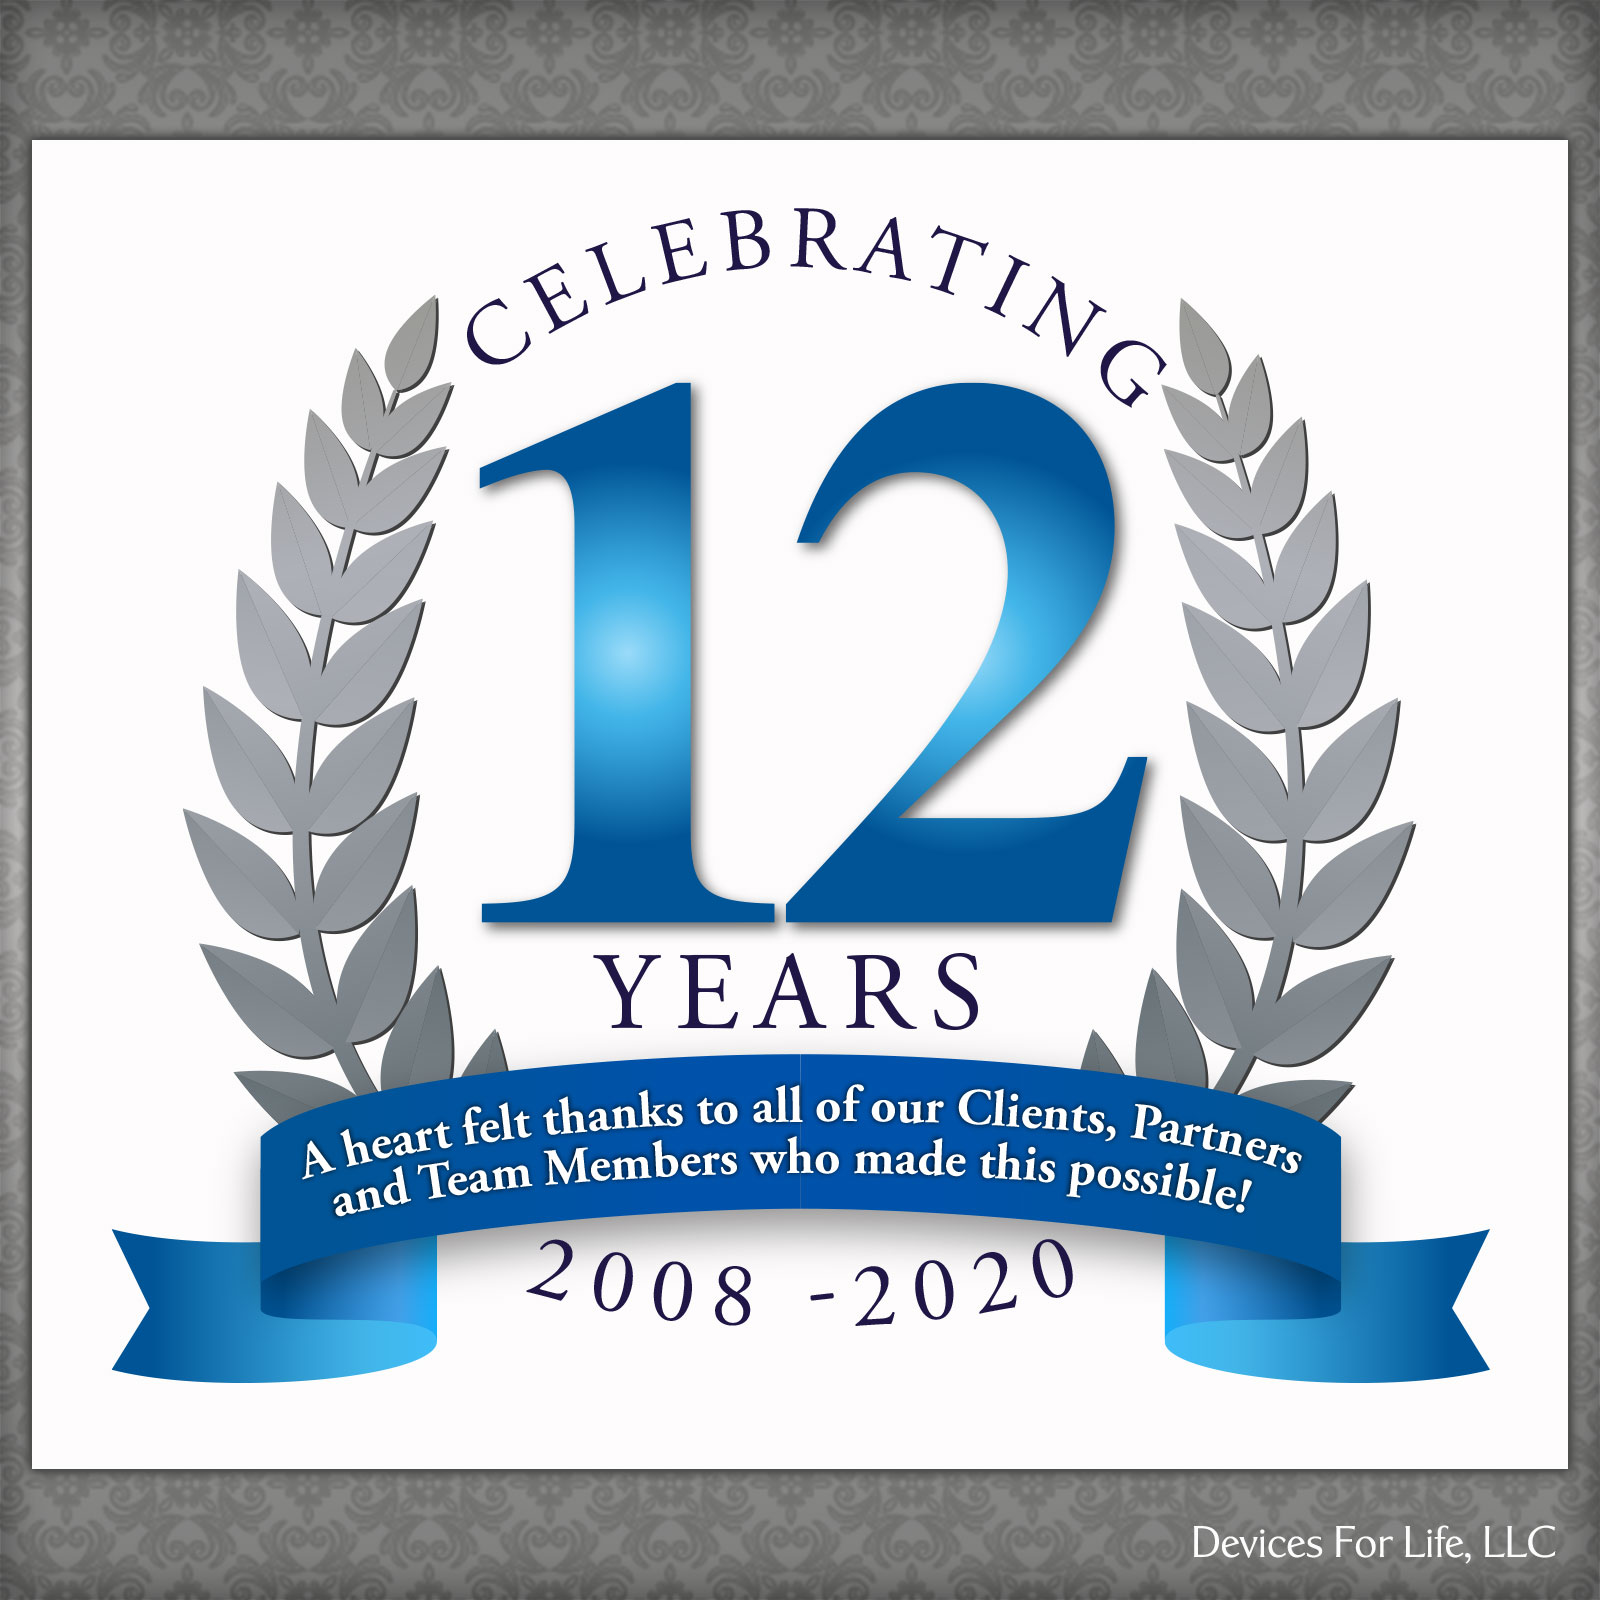 Devices For Life Celebrates 12 Years